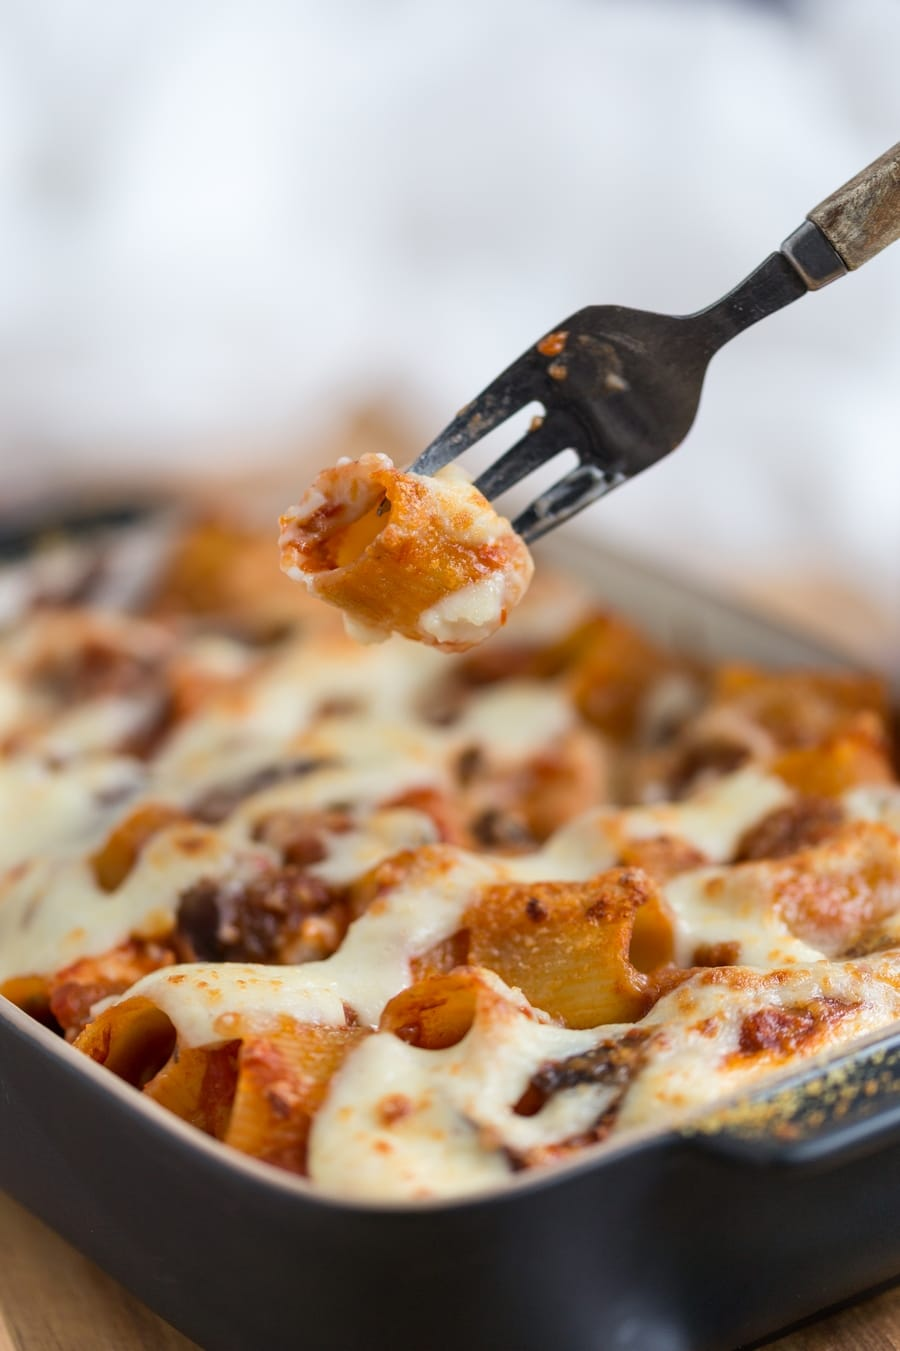 Fork lifting pasta piece from baked pasta casserole.